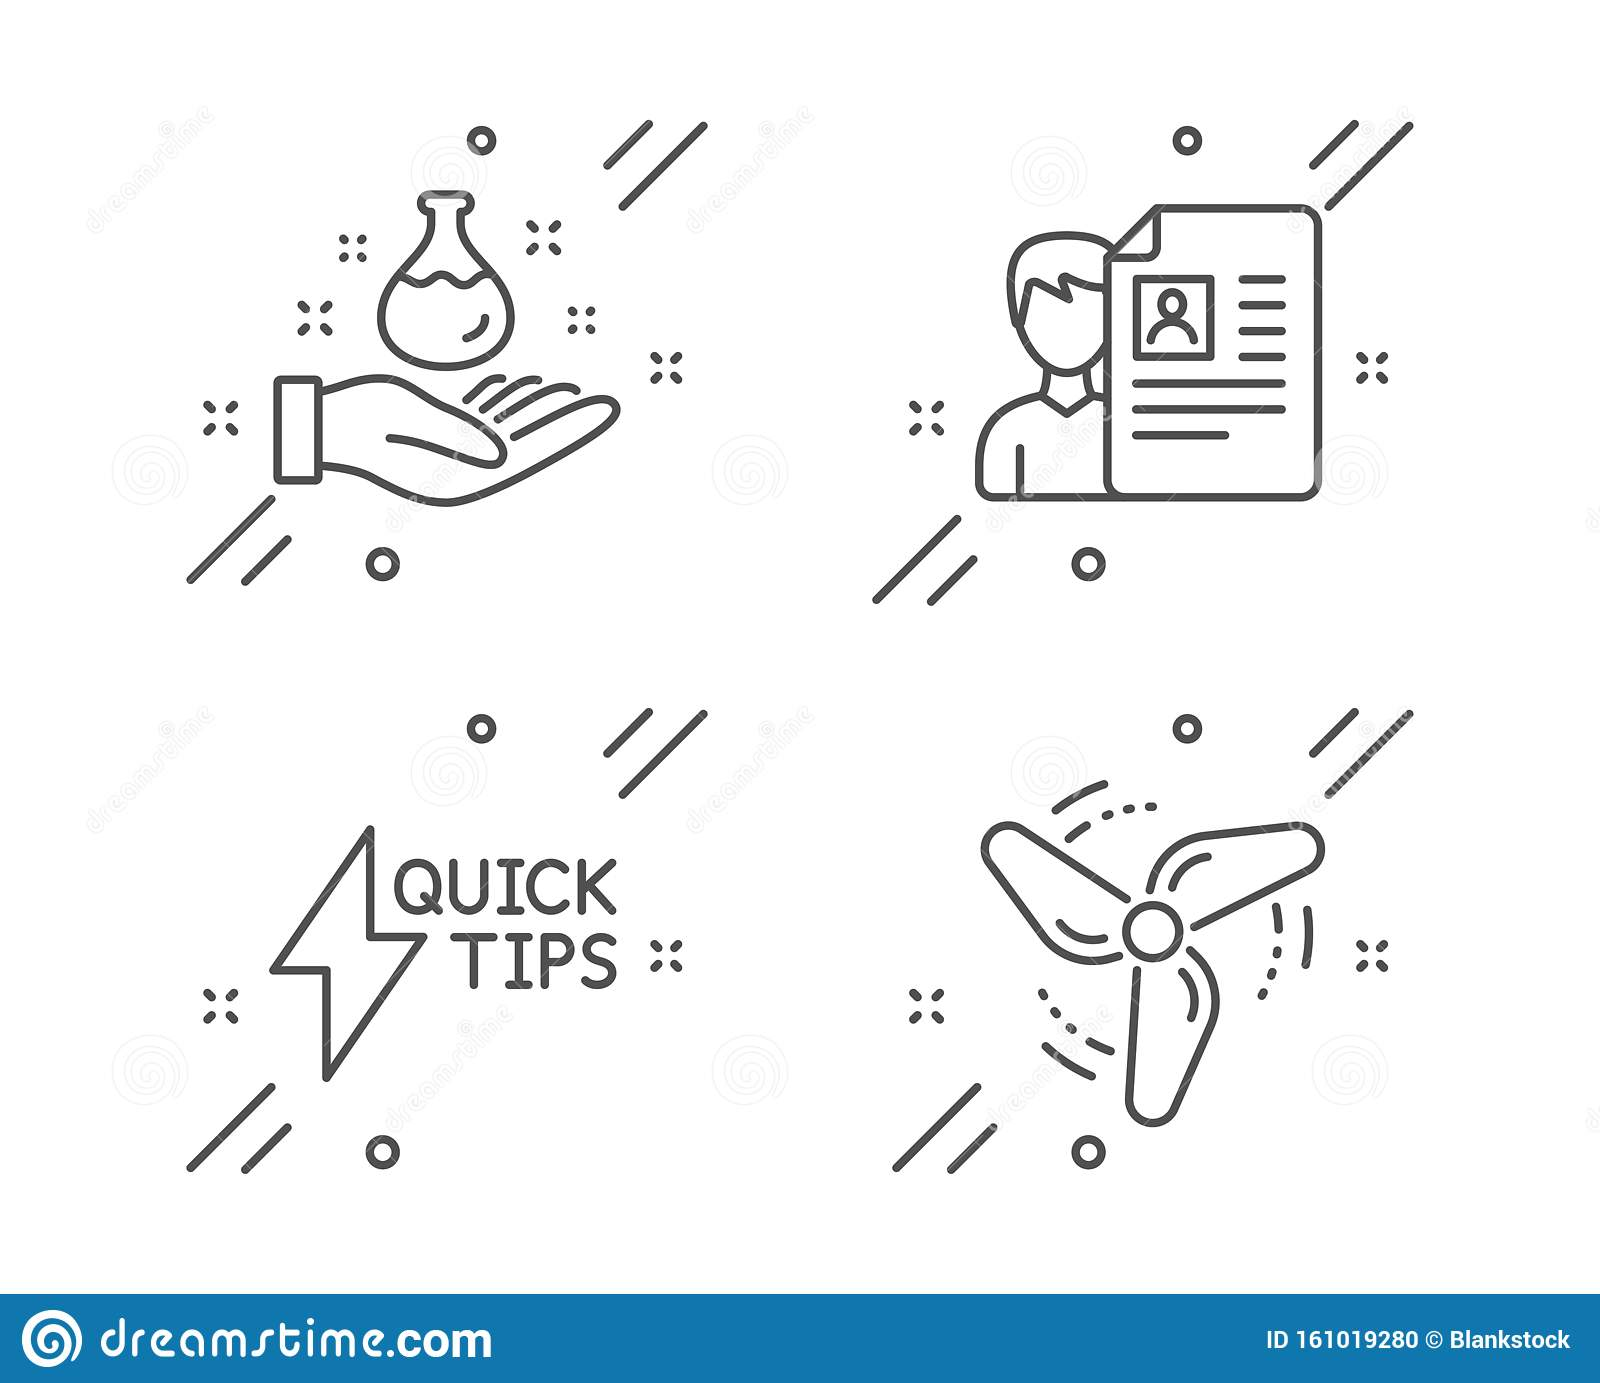 chemistry lab job interview and quickstart guide icons set wind energy sign vector stock vector illustration of glass resources 161019280 dreamstime com